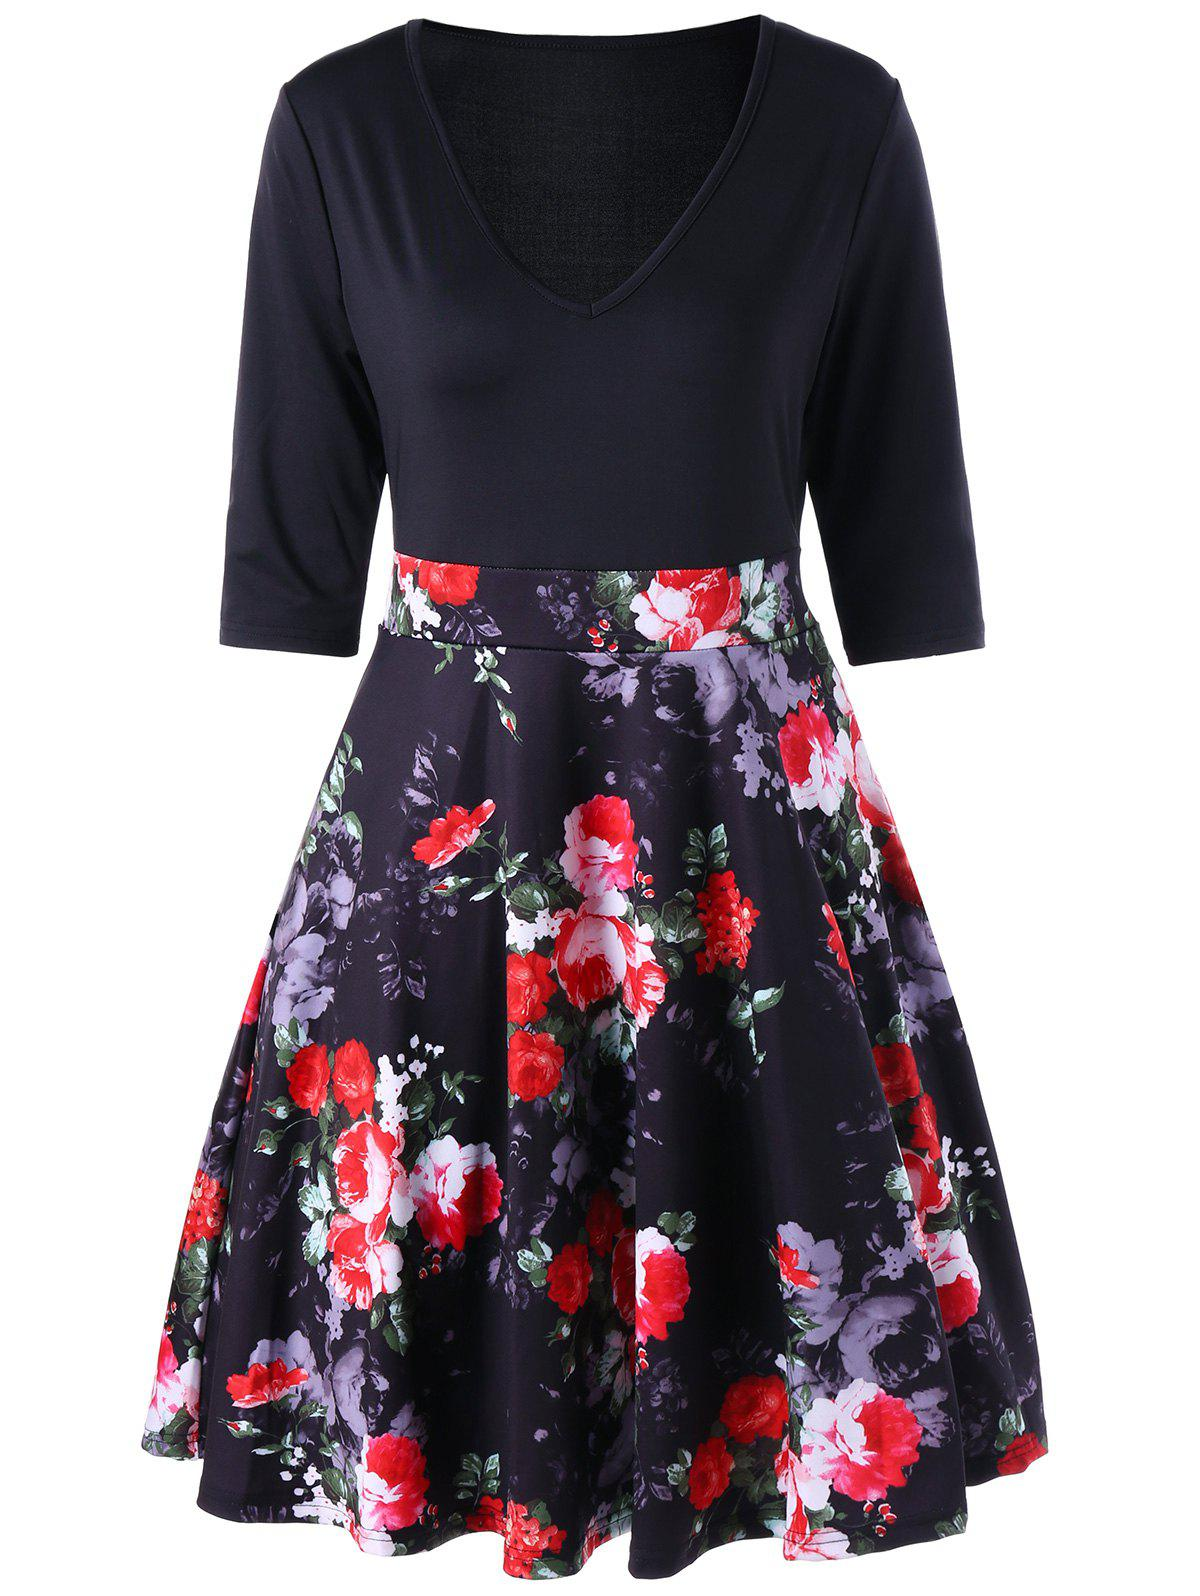 Floral V Neck High Waist A Line Dress - BLACK M